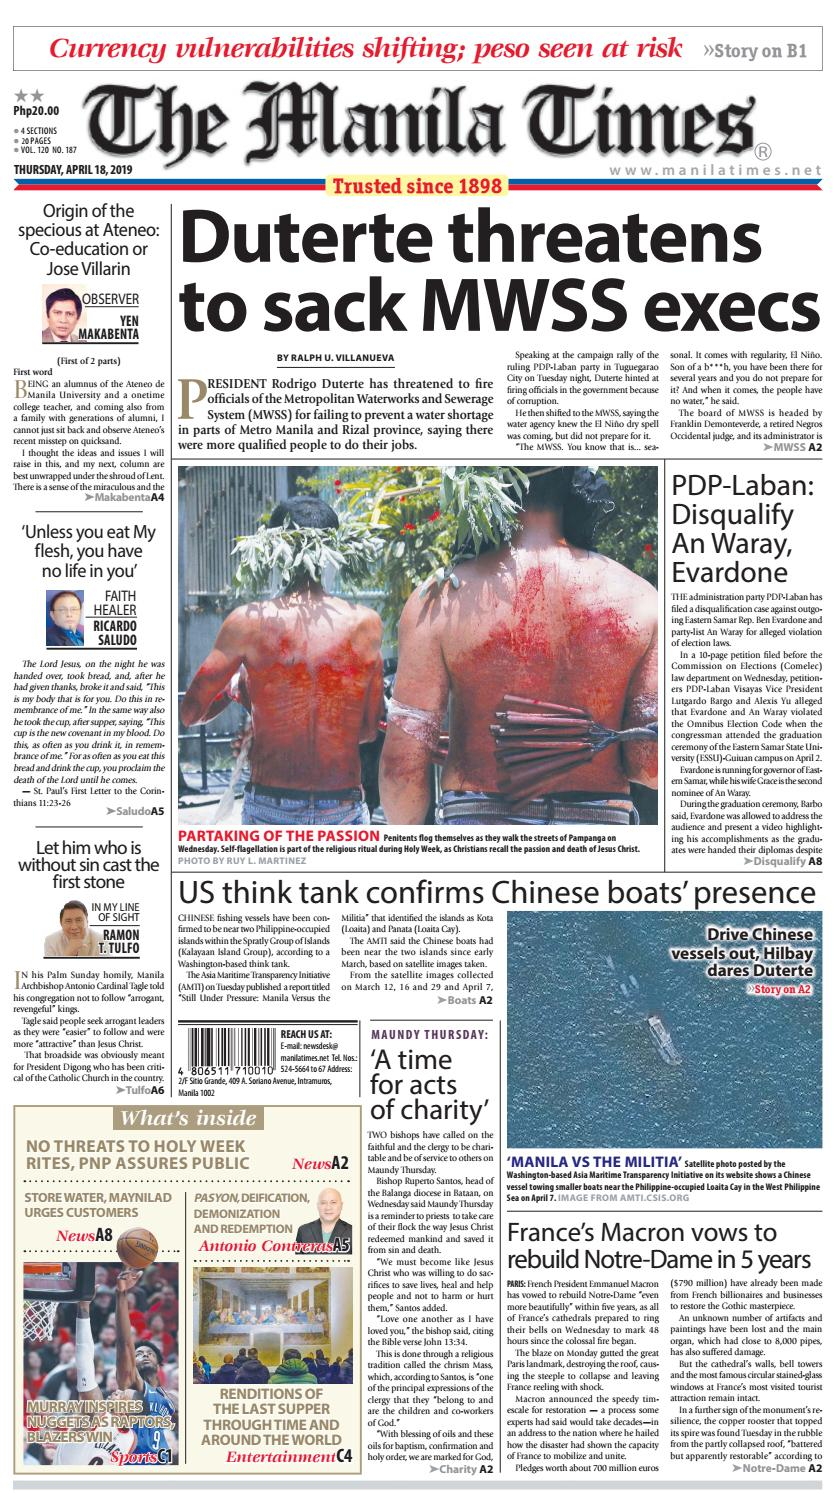 THE MANILA TIMES | APRIL 18, 2019 by The Manila Times - issuu